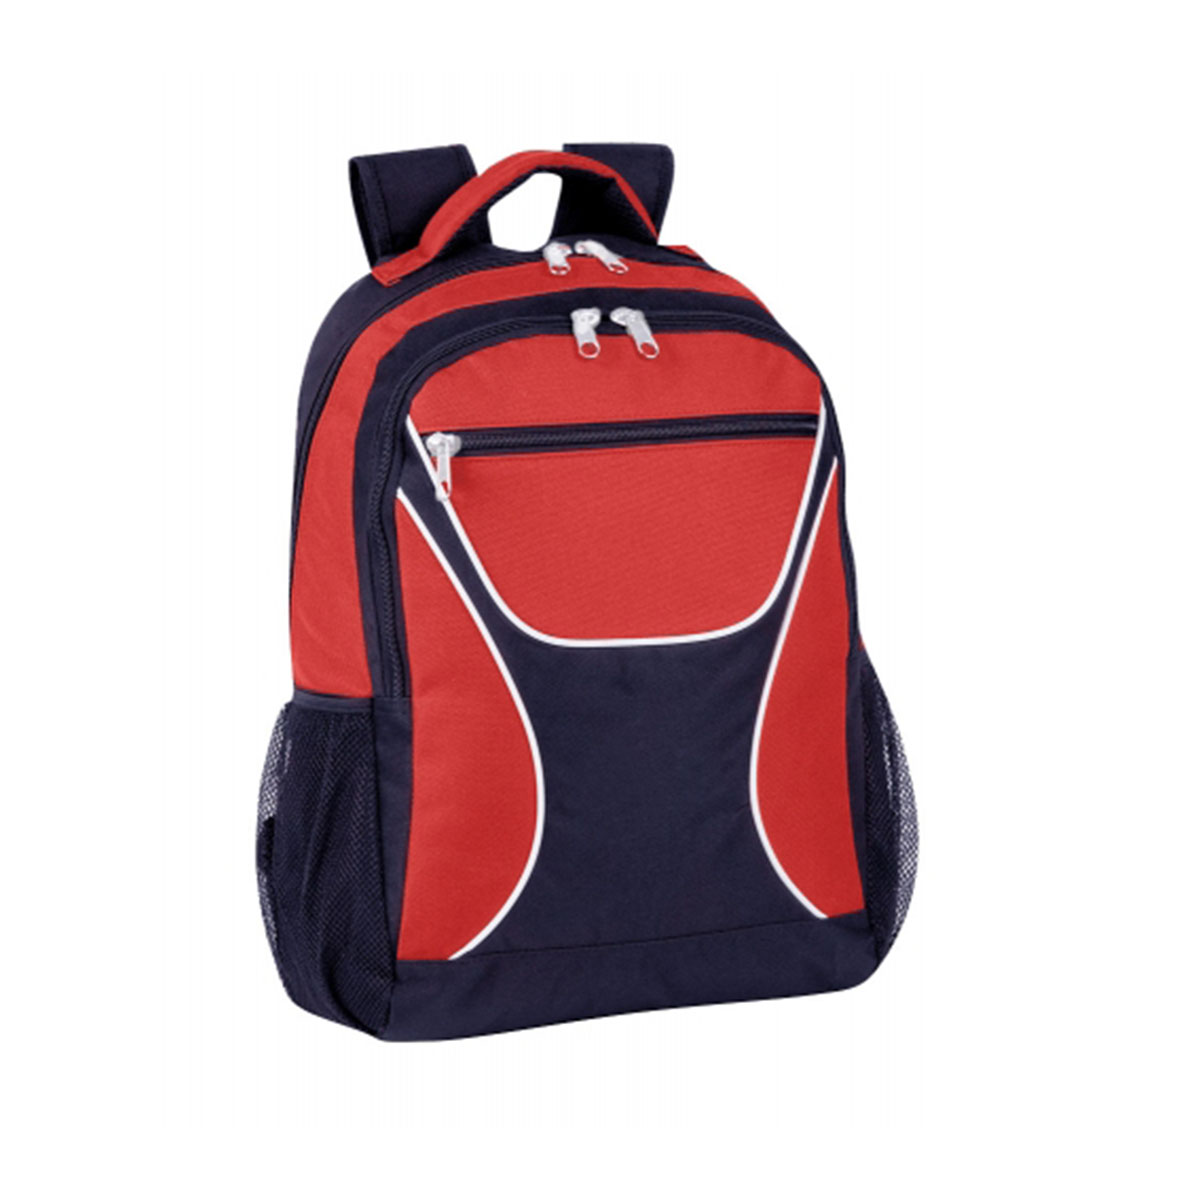 Backpack-Red / White / Navy